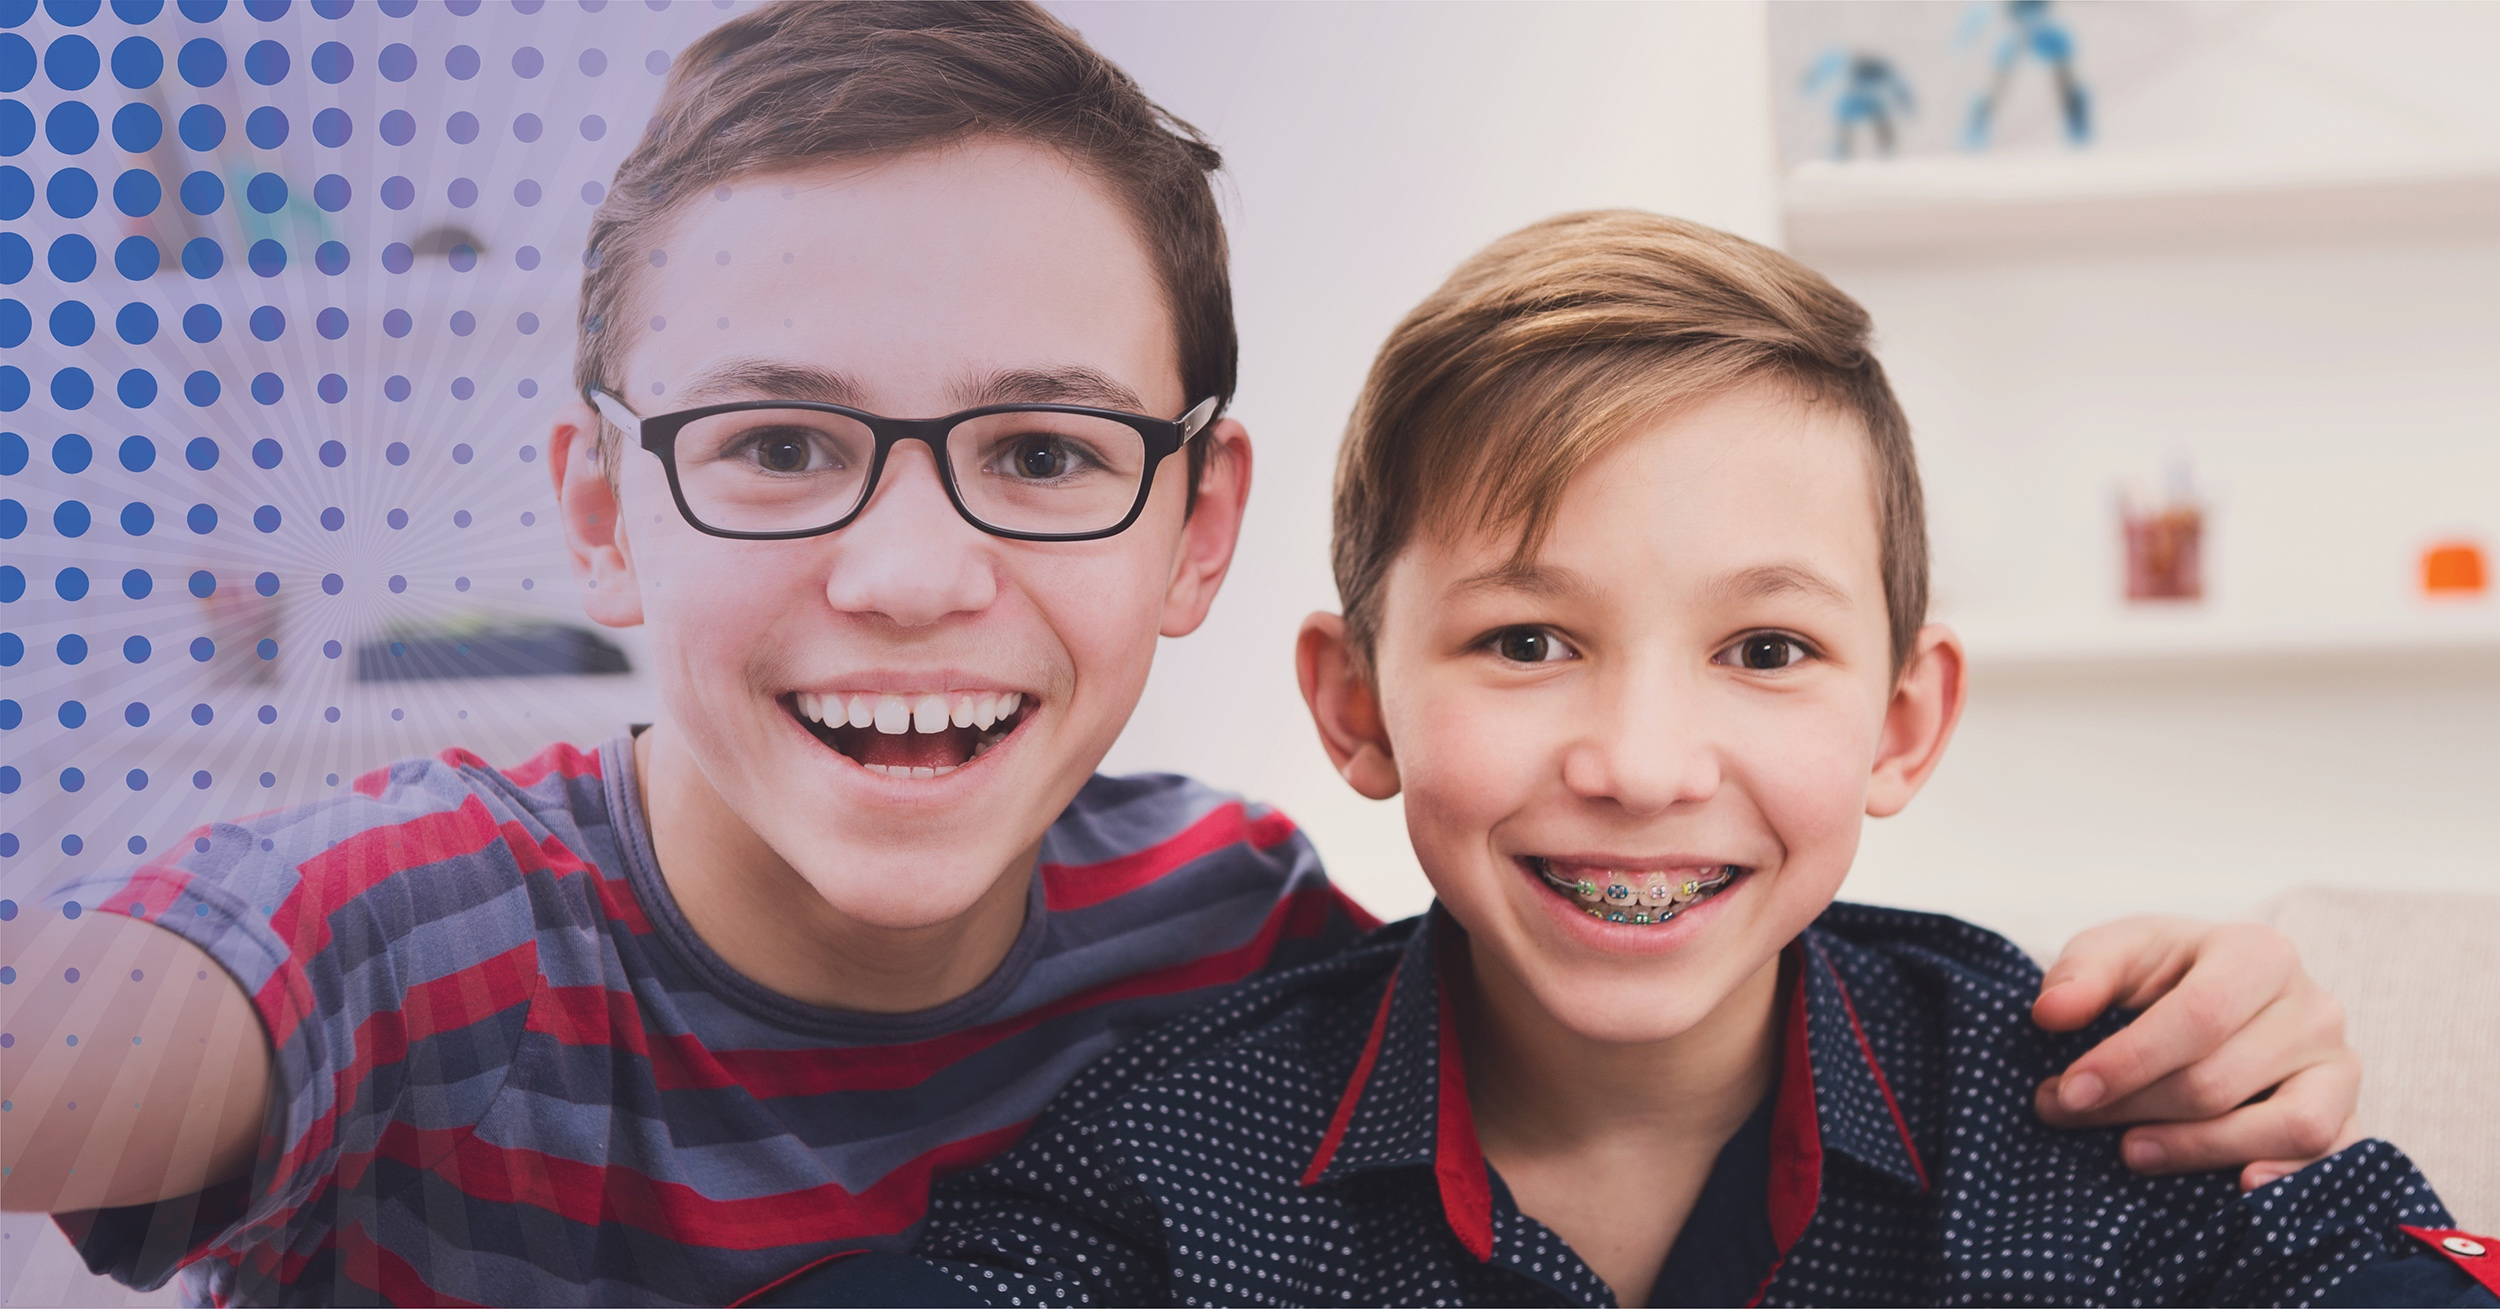 Orthodontics for Children: How Old and Why